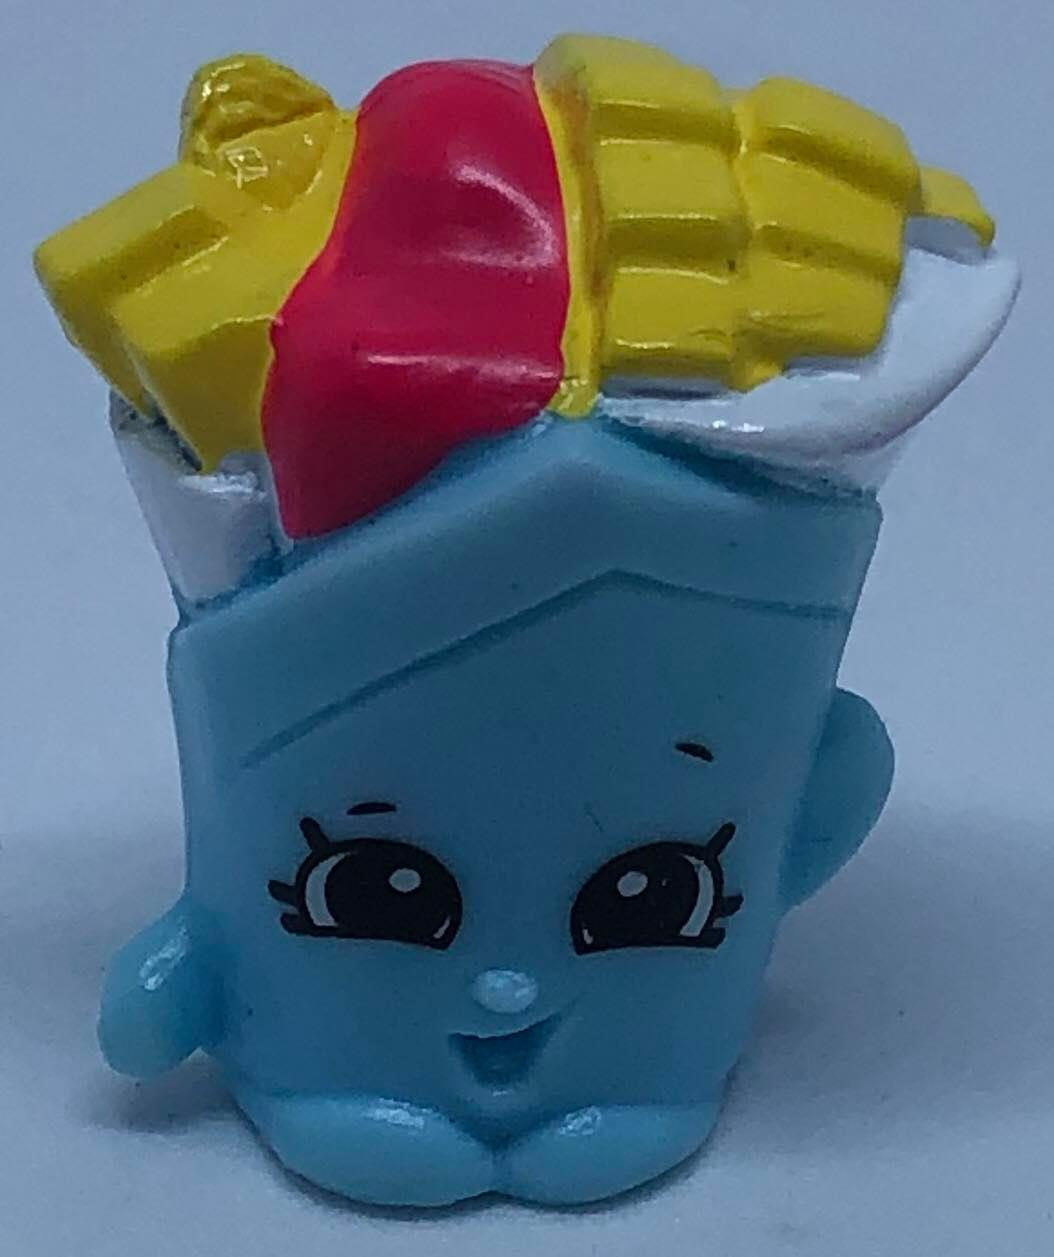 Shopkins Freddy Fish 'n' Chips Figure - Demize Collectibles LTD